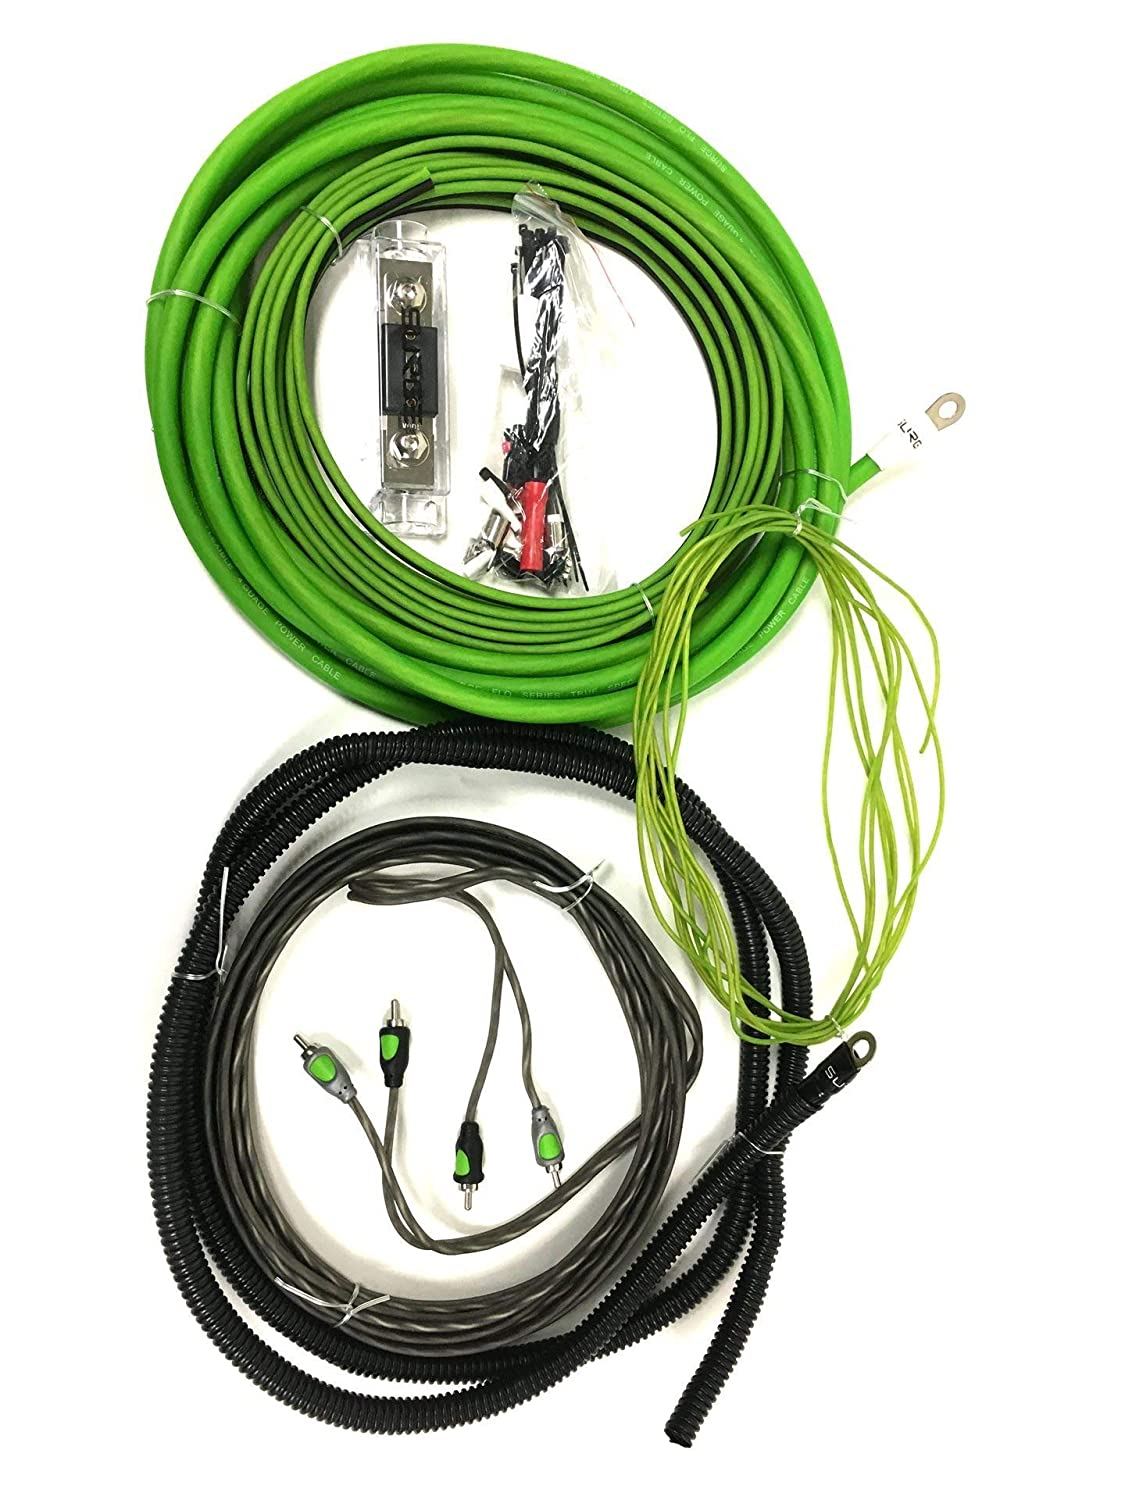 Surge F 8 Flo Series Gauge 800w Awg Amplifier 1500w 8ga Car Audio Subwoofer Amp Wiring Fuse Holder Wire Installation Install Kit Envy Green Cell Phones Accessories